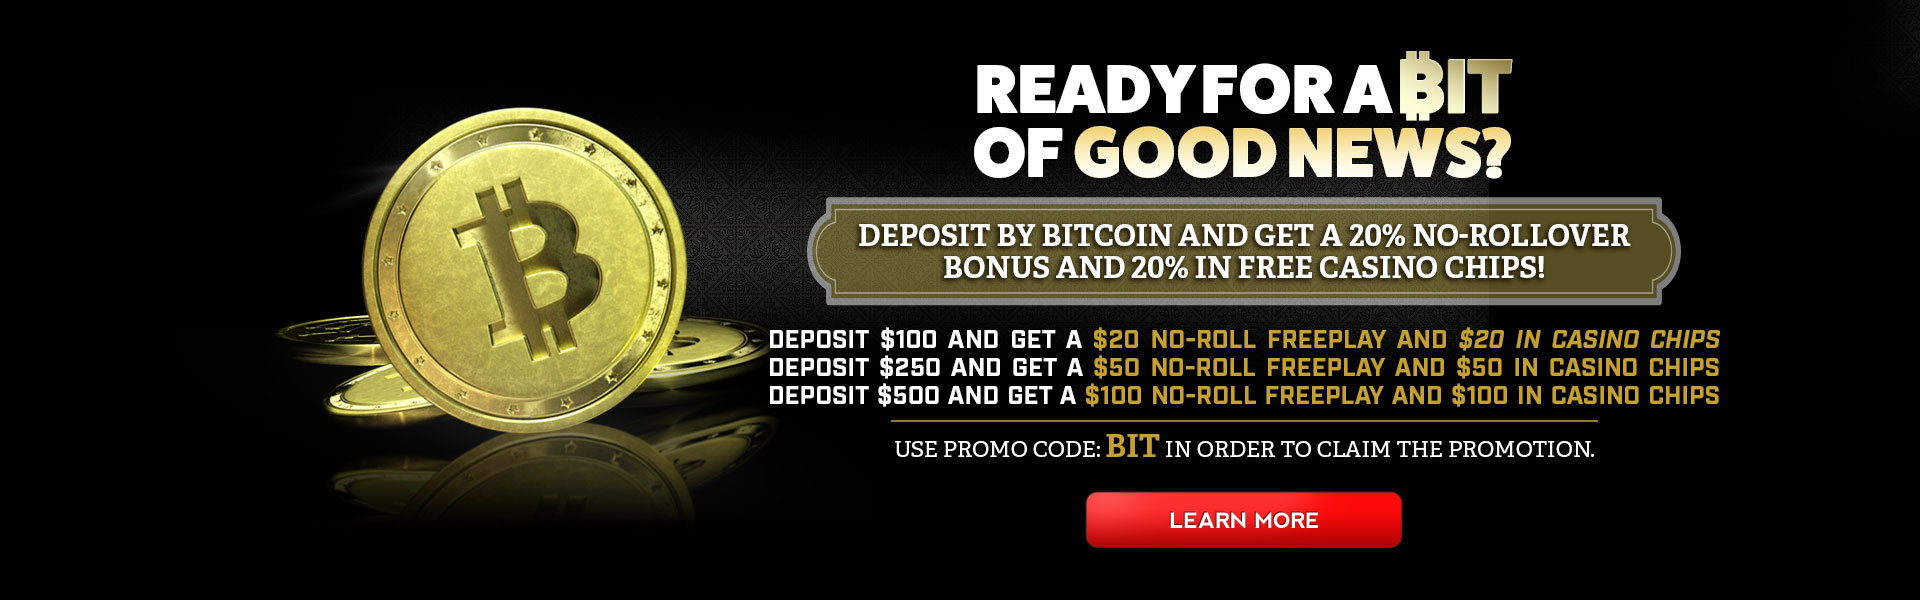 Bitcoins Promotion